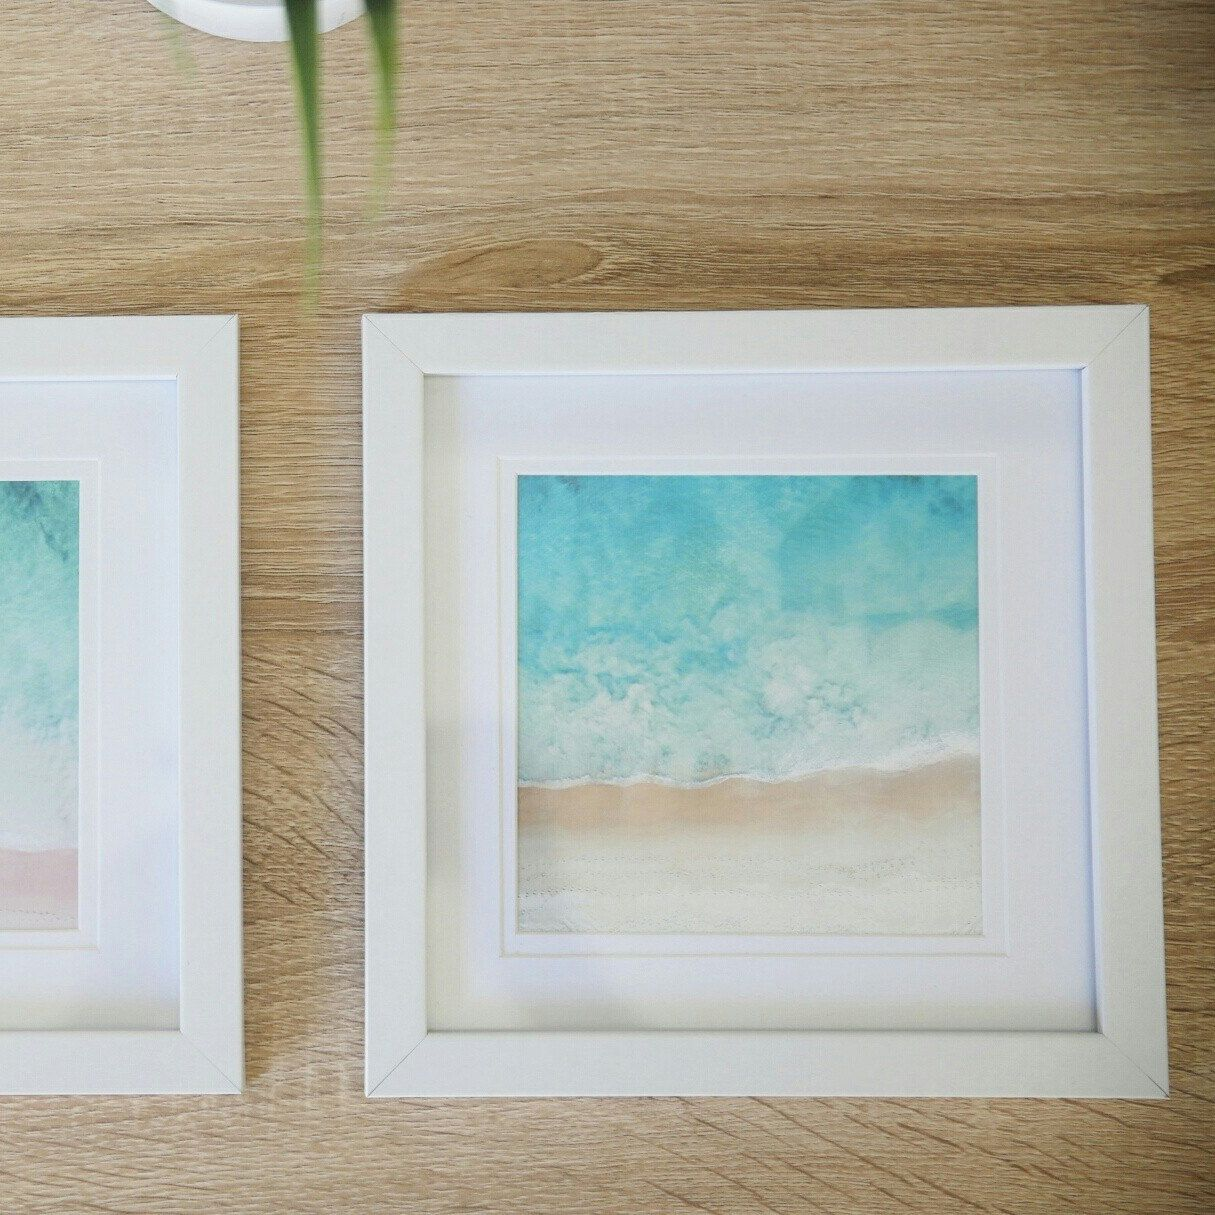 Working on some new beach products 😊